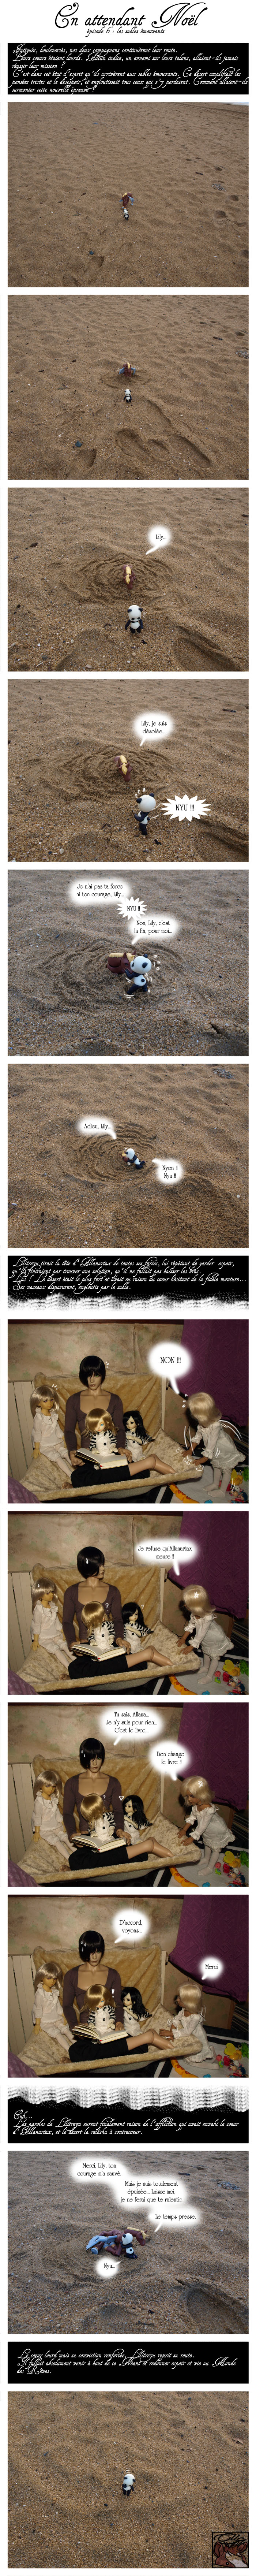 [Heika's 3] Calendrier Avent 2019 ep 5 - Page 2 Quicksand_trap_by_monsieur_cheval-d88x3t0